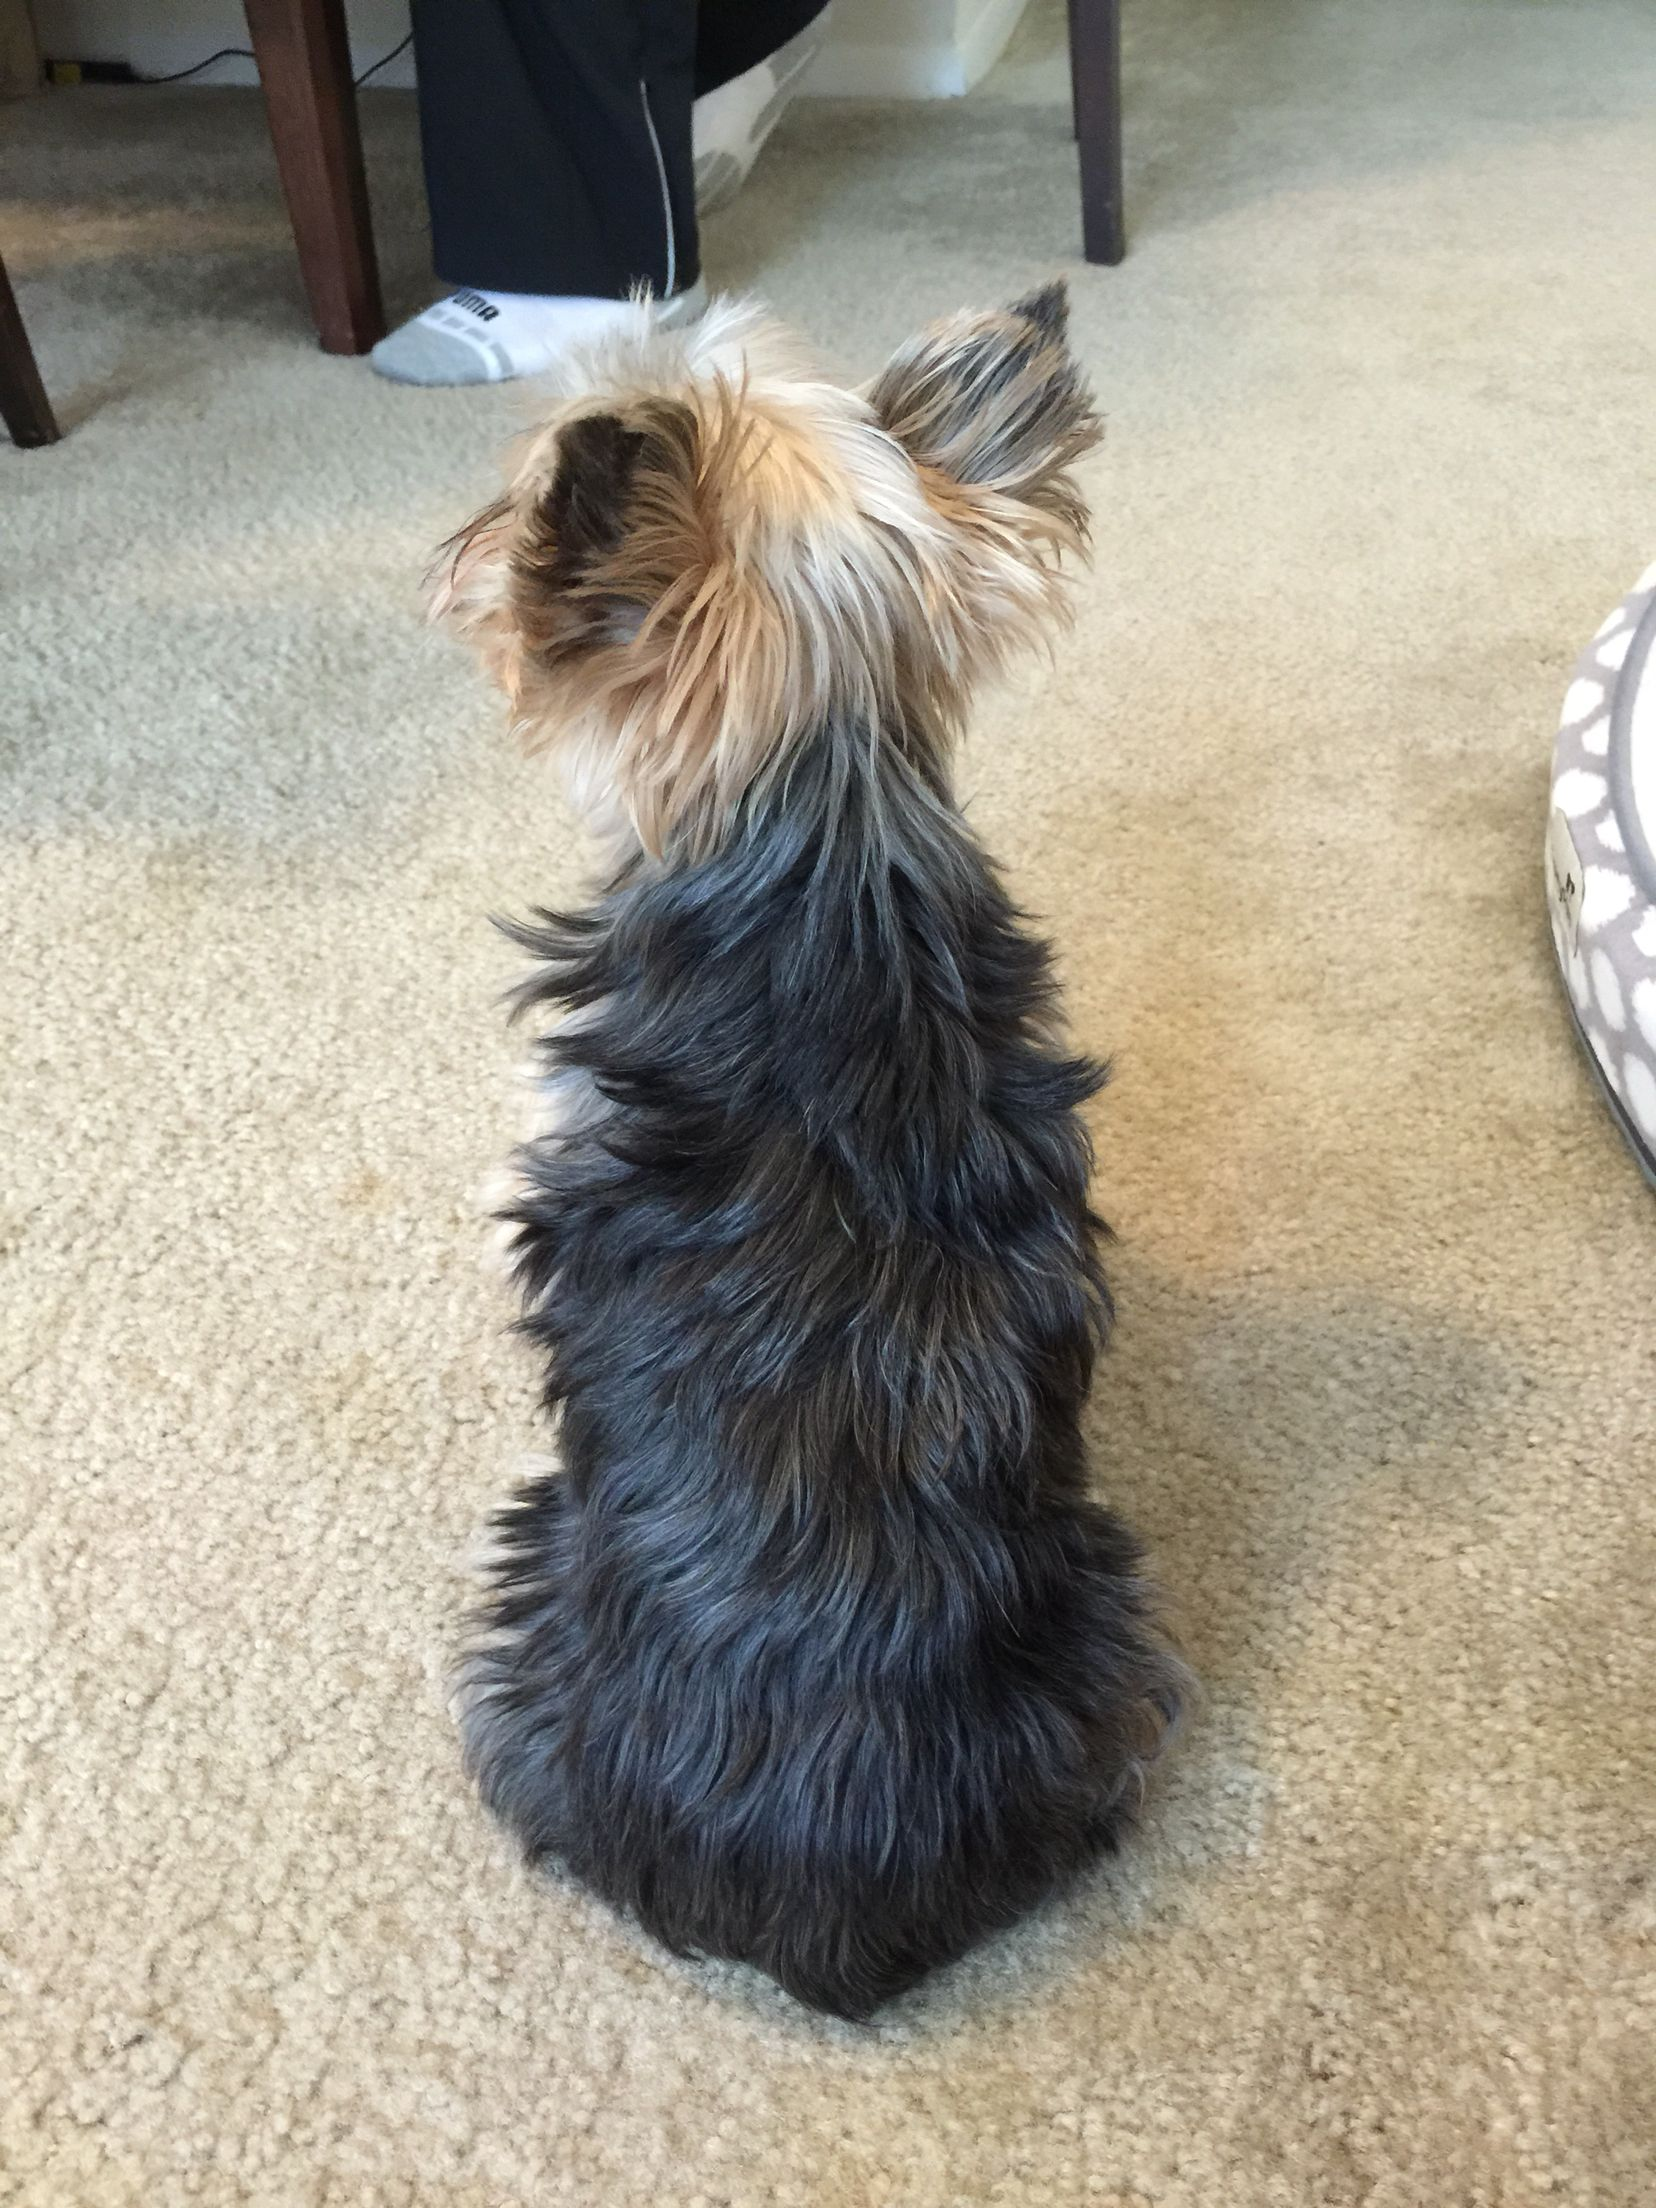 Not Talking Must Be A Yorkie Thing Cute Dogs And Puppies Baby Animals Funny Yorkie